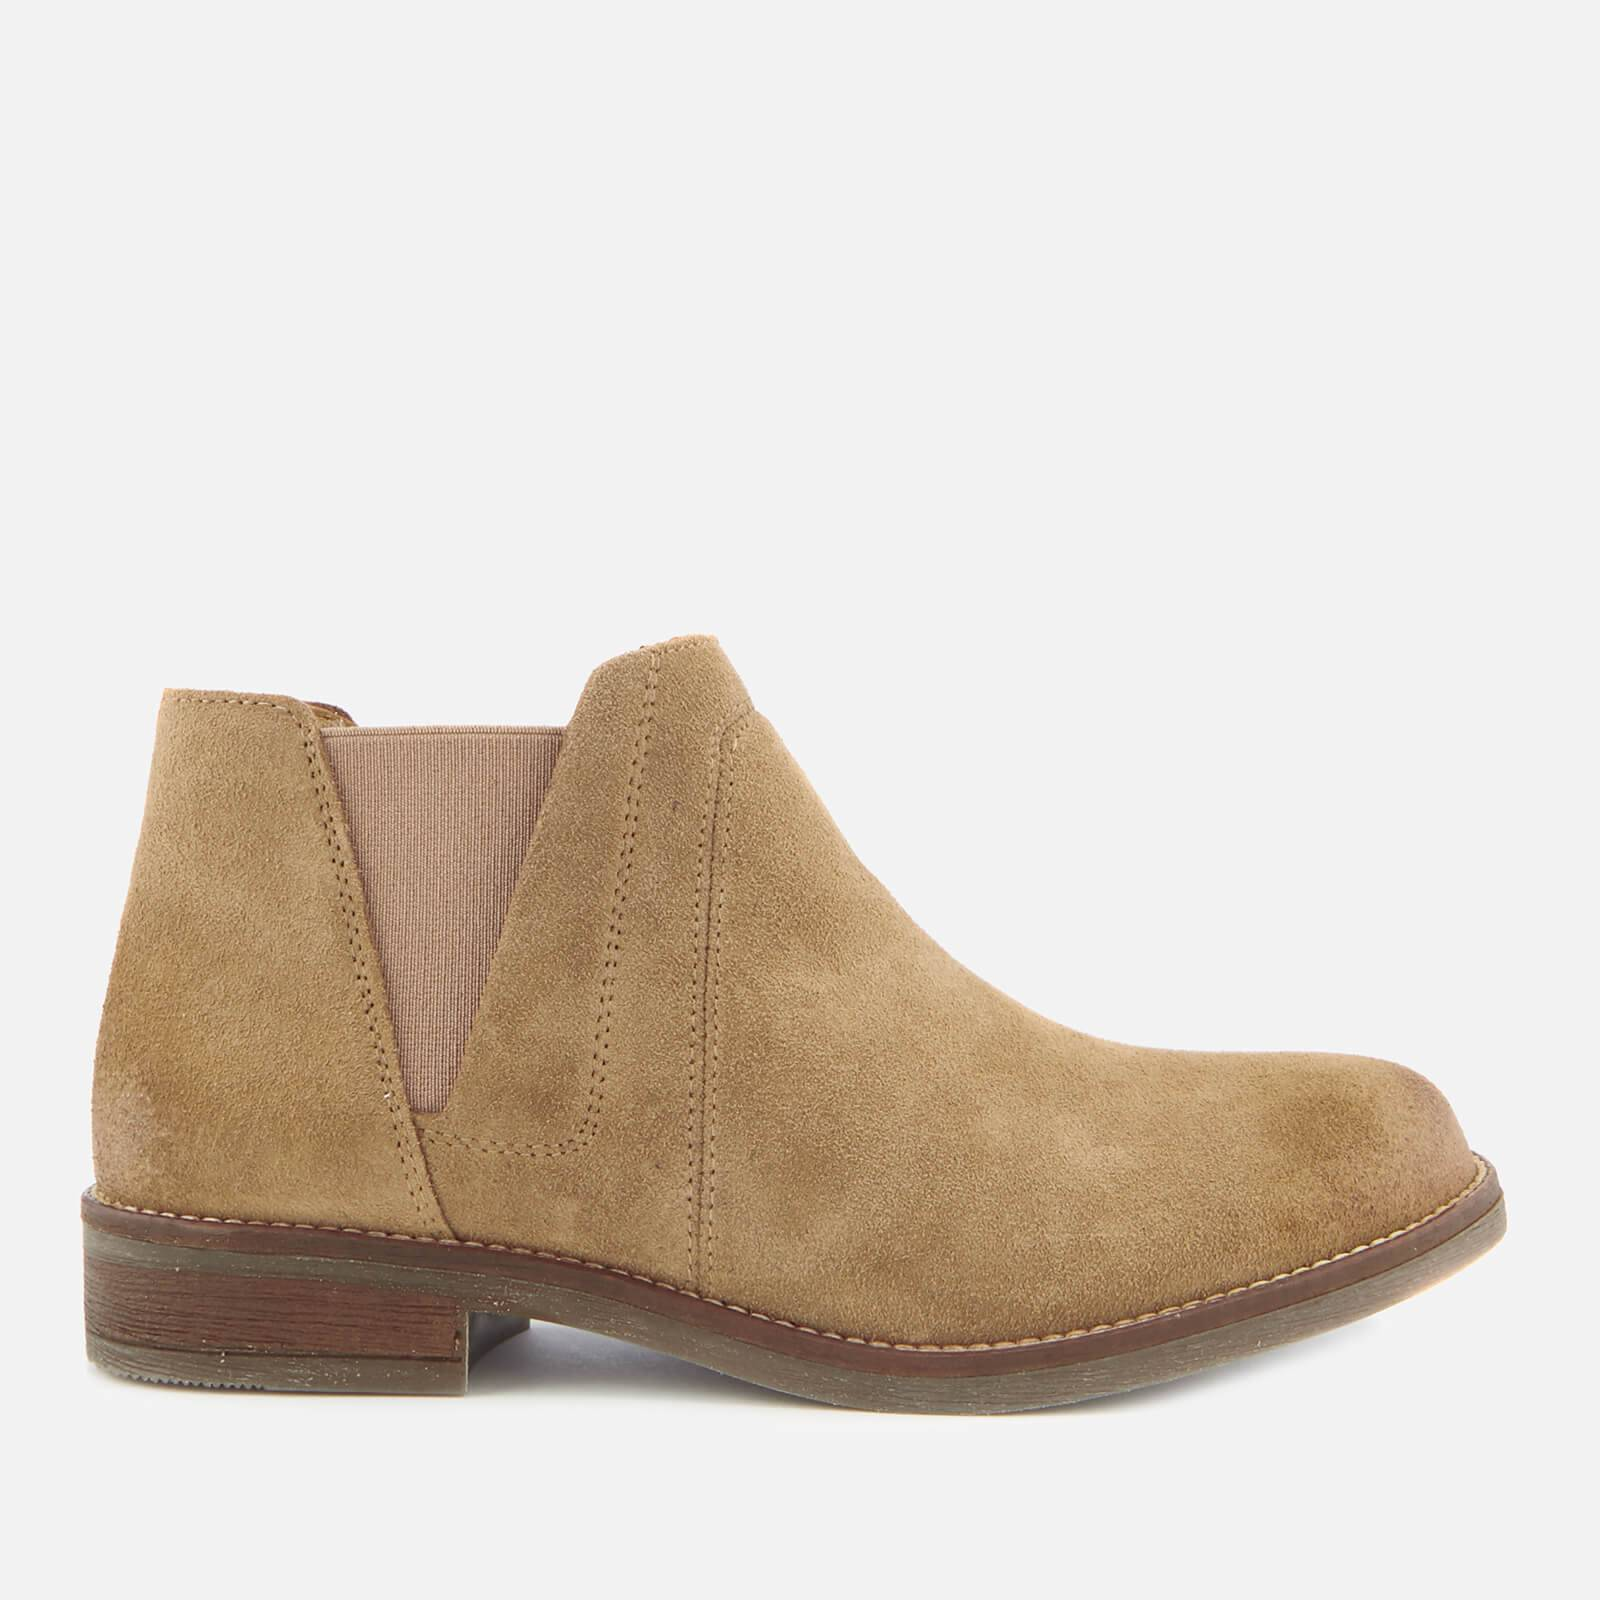 Clarks Women's Demi Beat Suede Ankle Boots - Sand - UK 3 - Beige